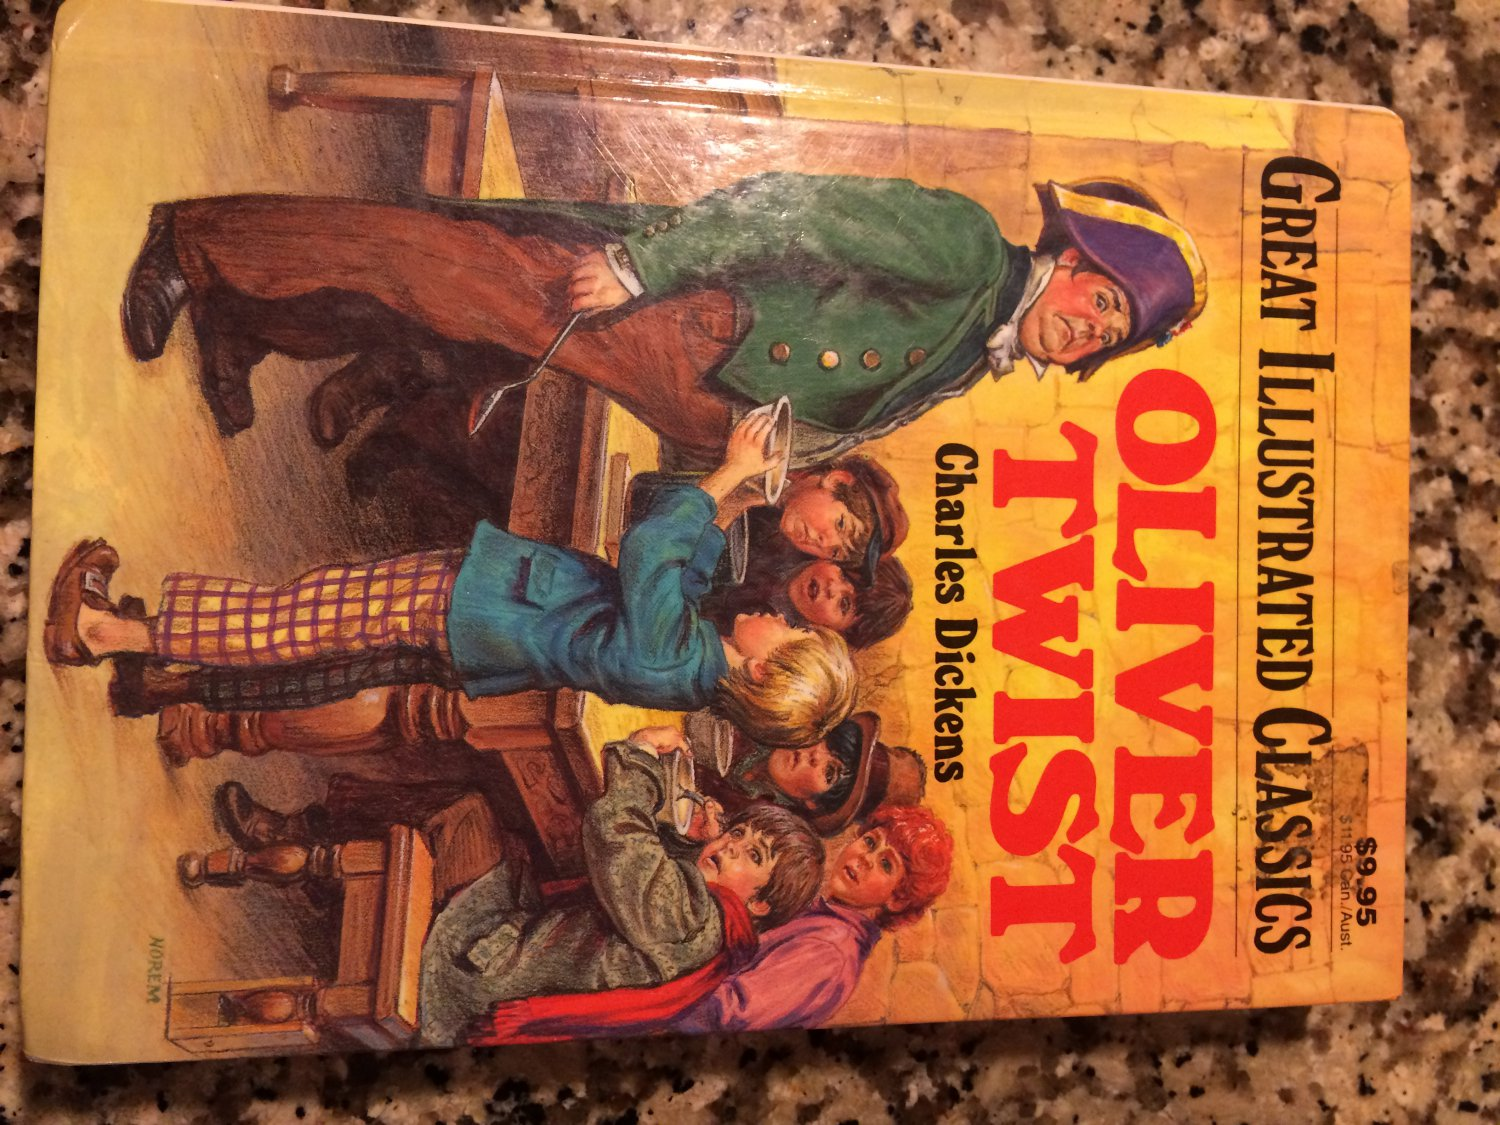 Oliver Twist (Great Illustrated Classics ) [Jan 01, 2006] Dickens, Charles